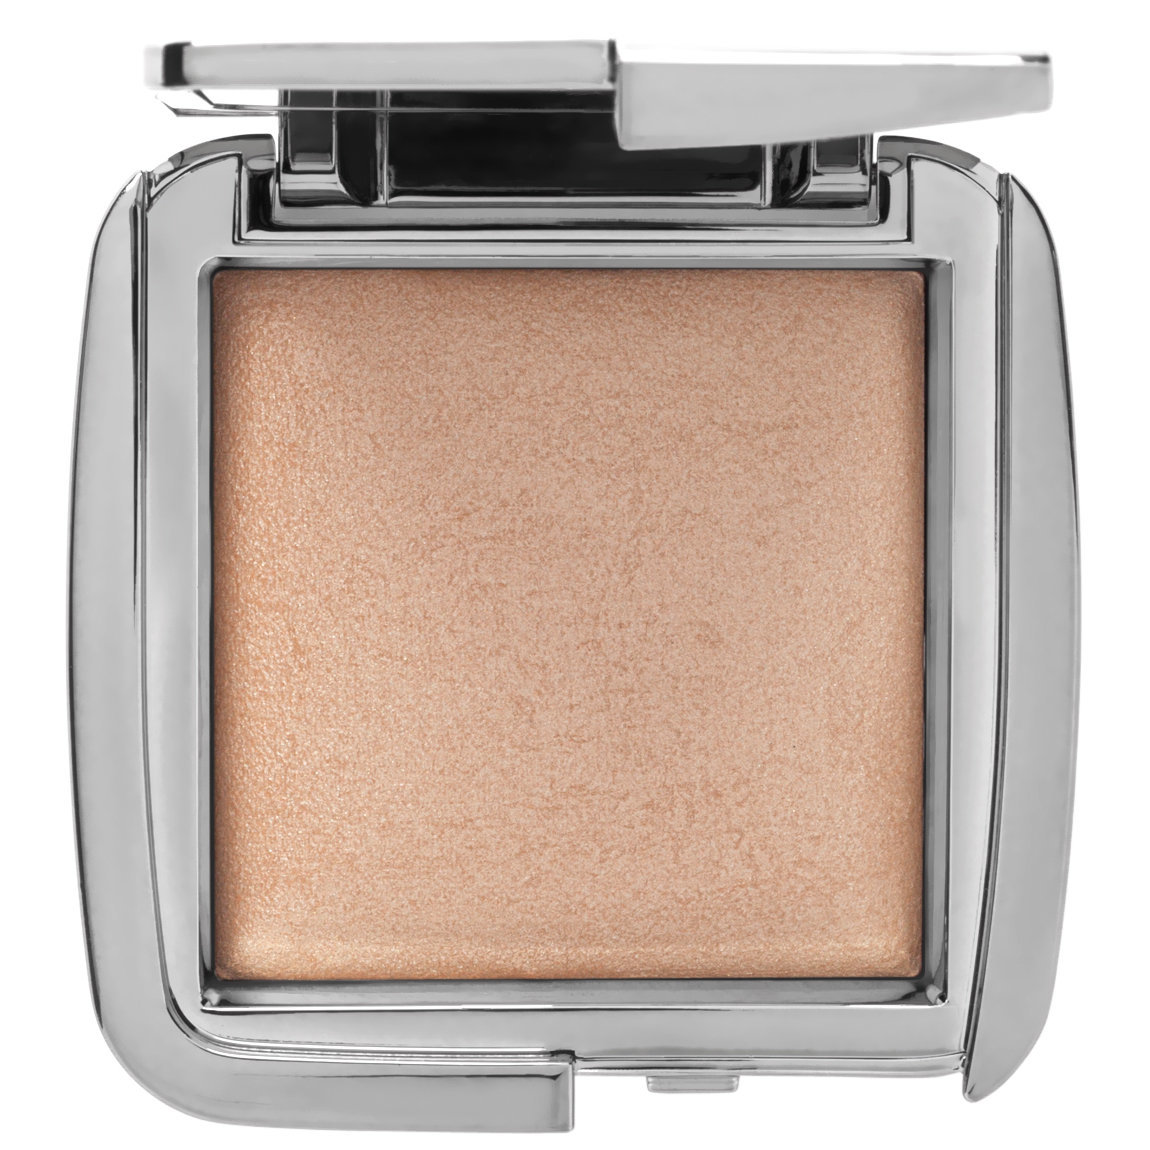 Hourglass Ambient Strobe Lighting Powder Brilliant Strobe Light product smear.